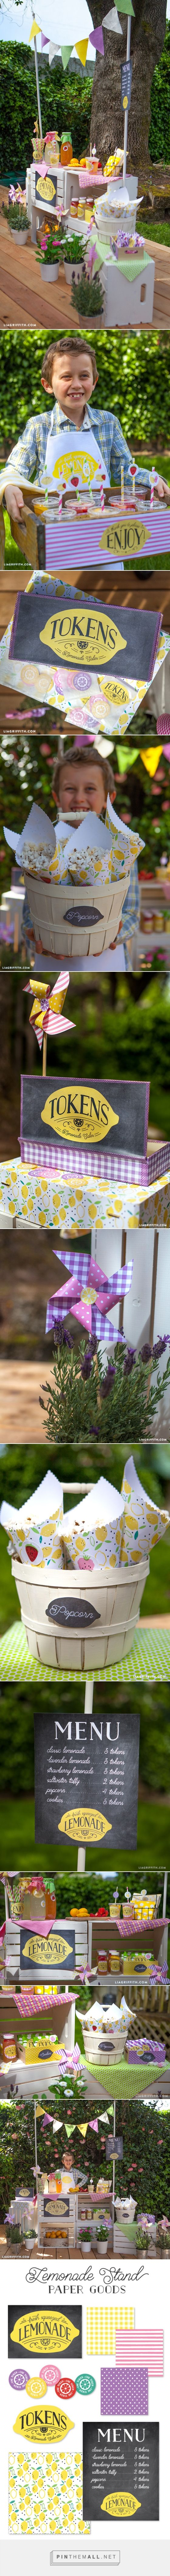 Make Your Own Felt Bunting Flags and Lemonade Stand - Lia Griffith - created via http://pinthemall.net